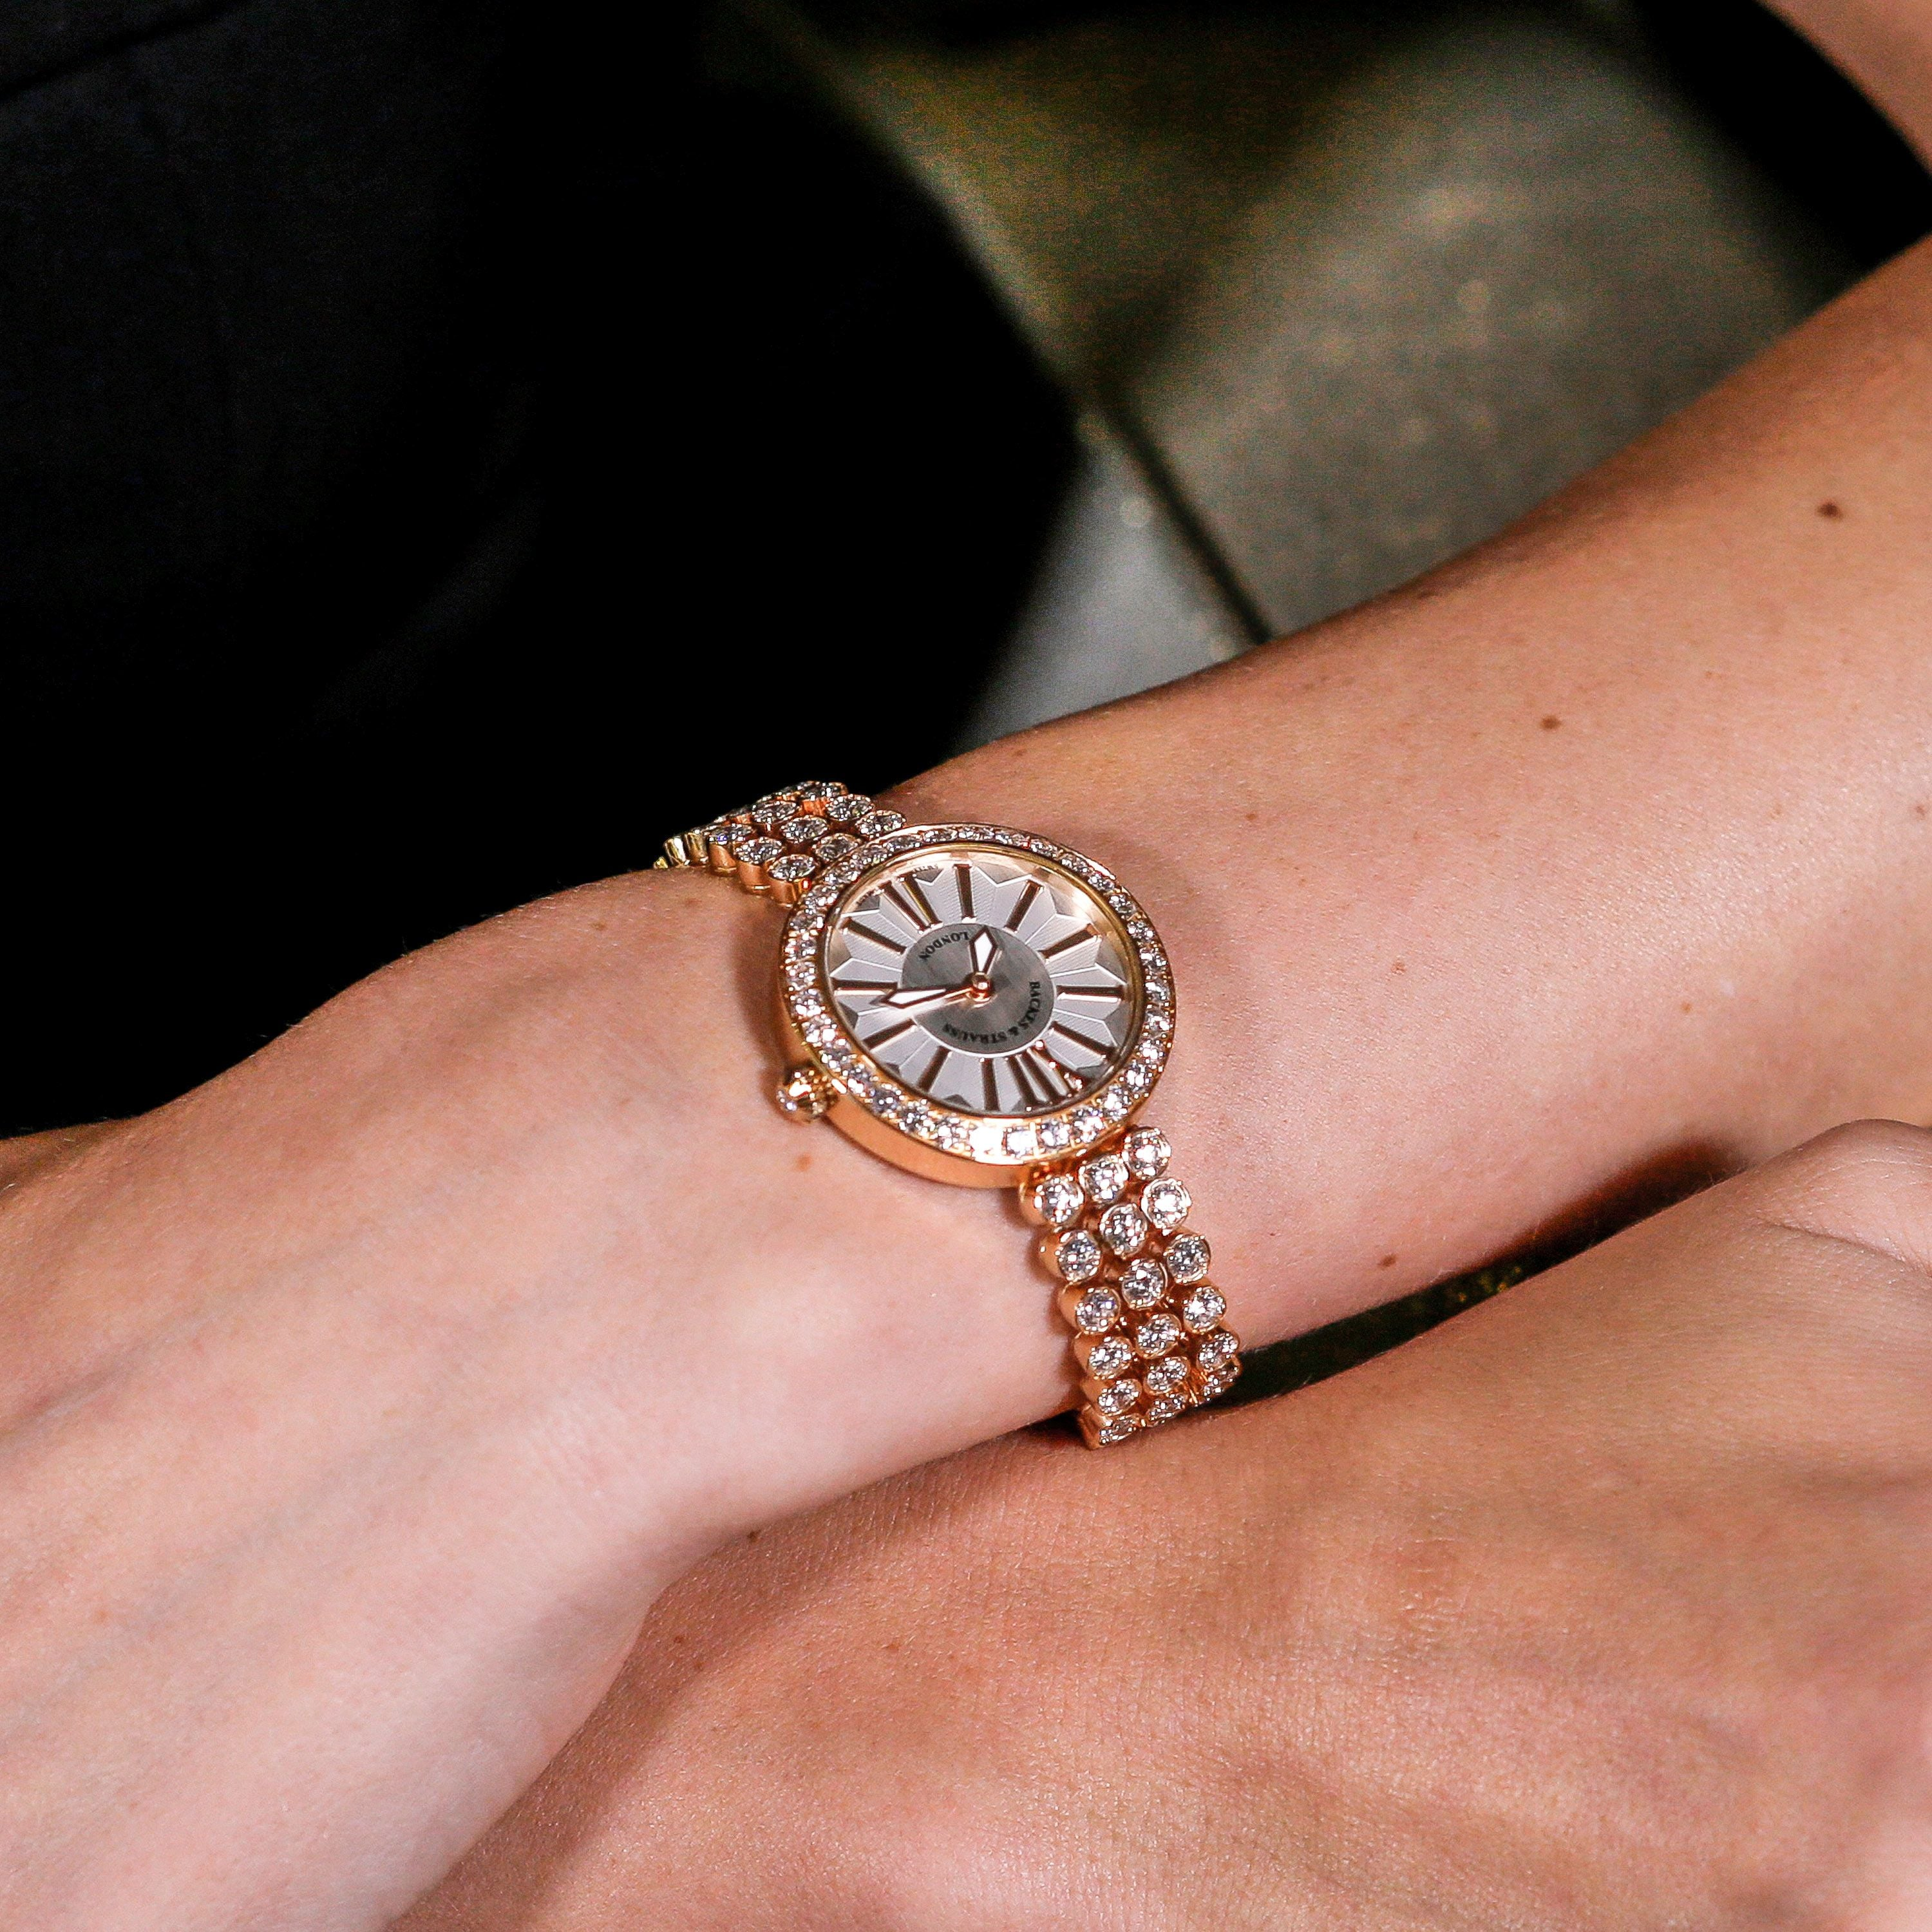 Piccadilly Duchess 33 Luxury Diamond Watch for Women - 33 mm Rose Gold - Backes & Strauss